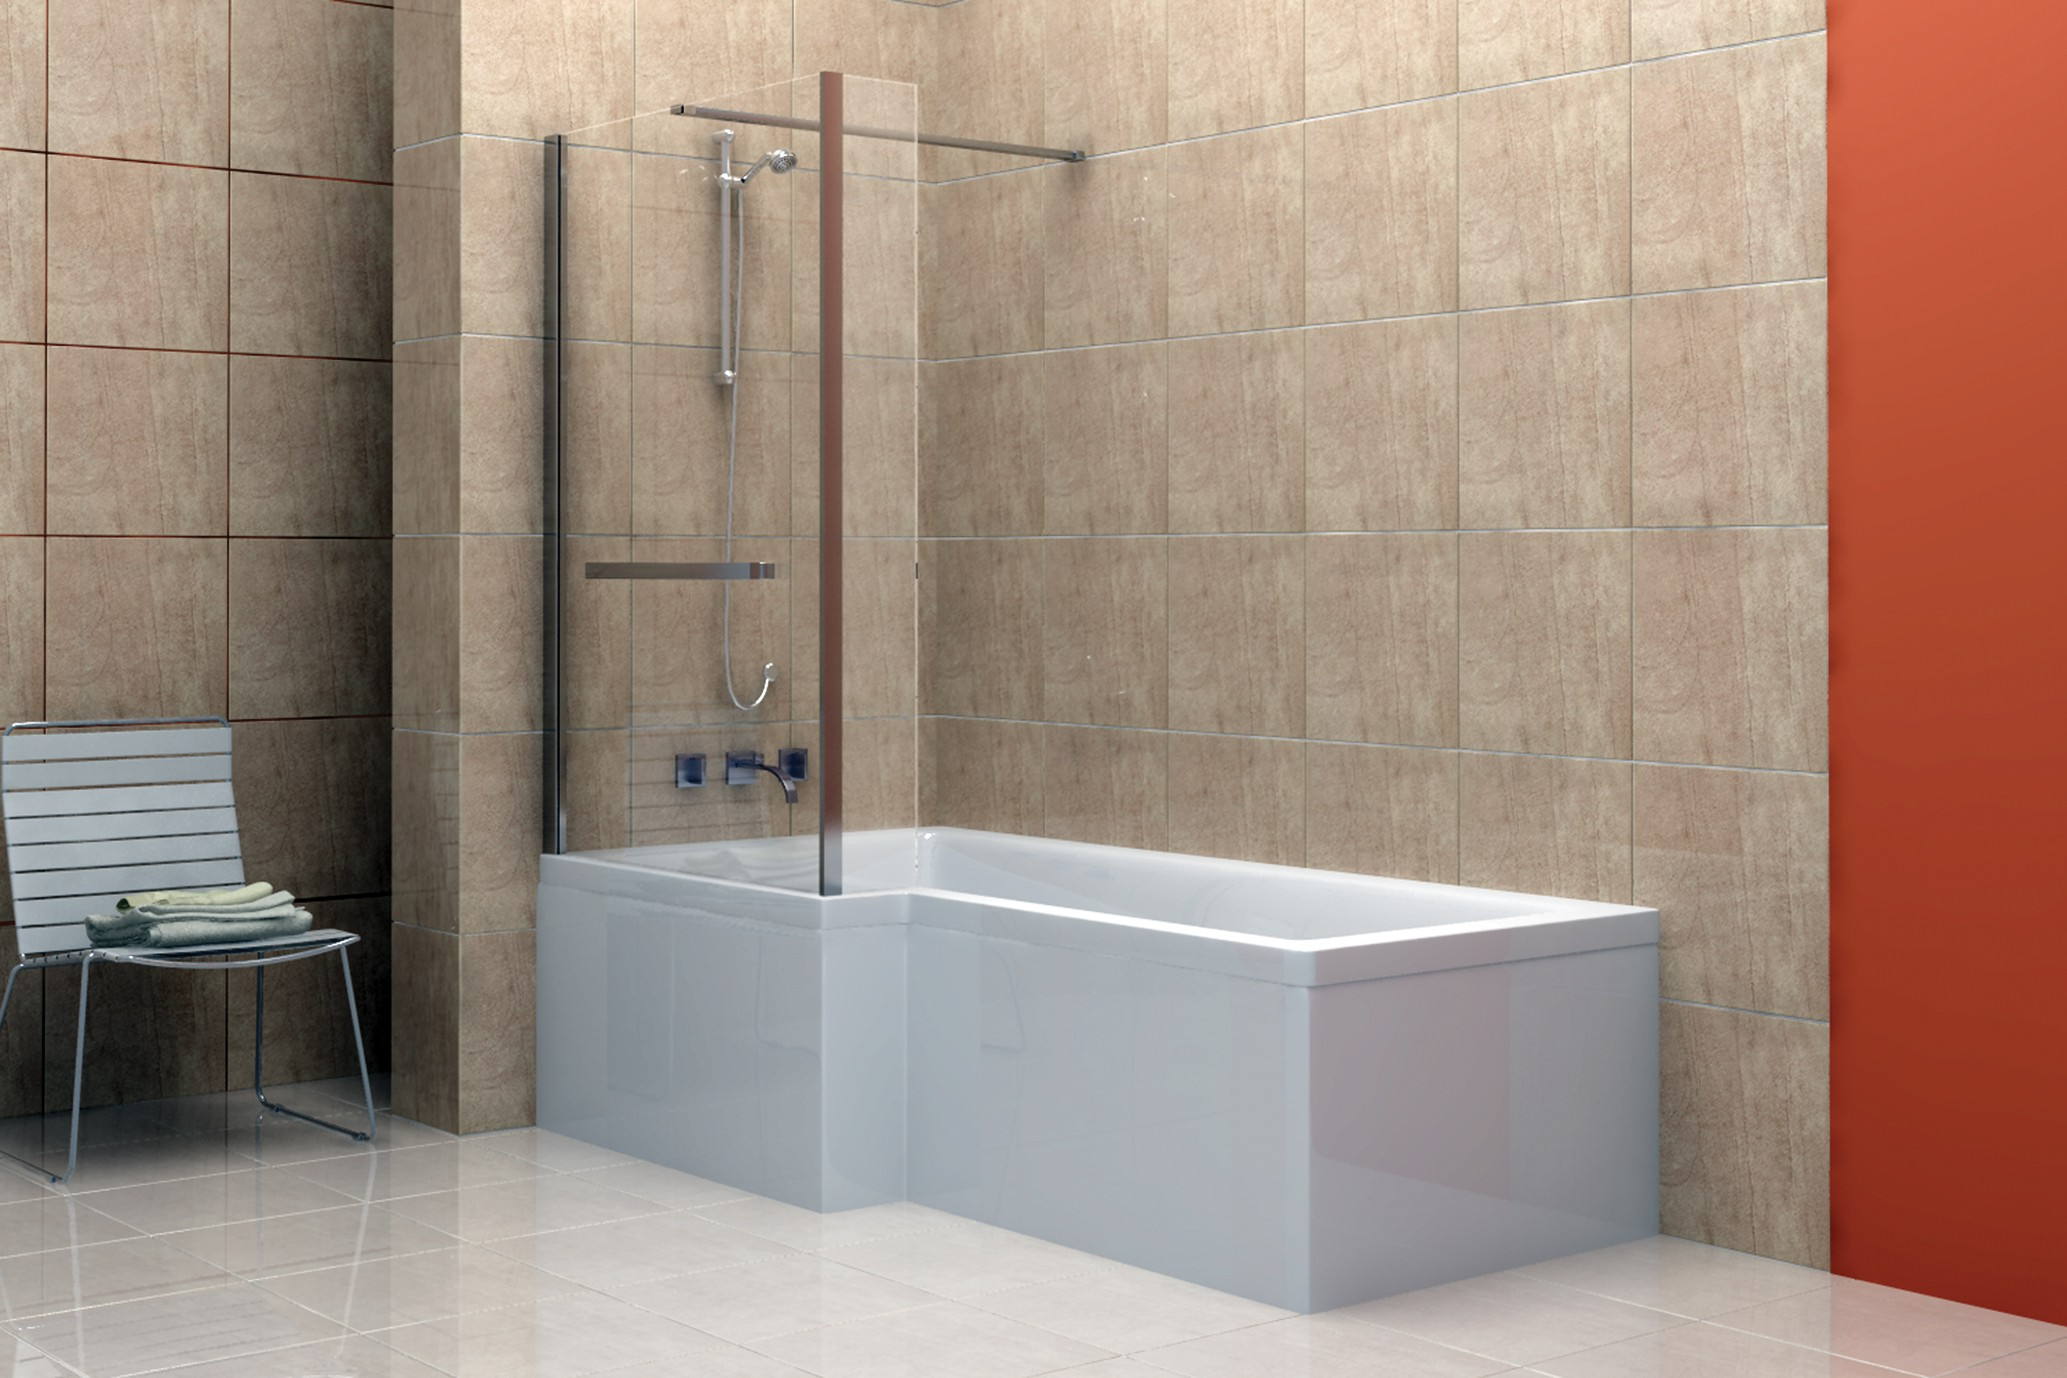 Douche archives badkamer courant